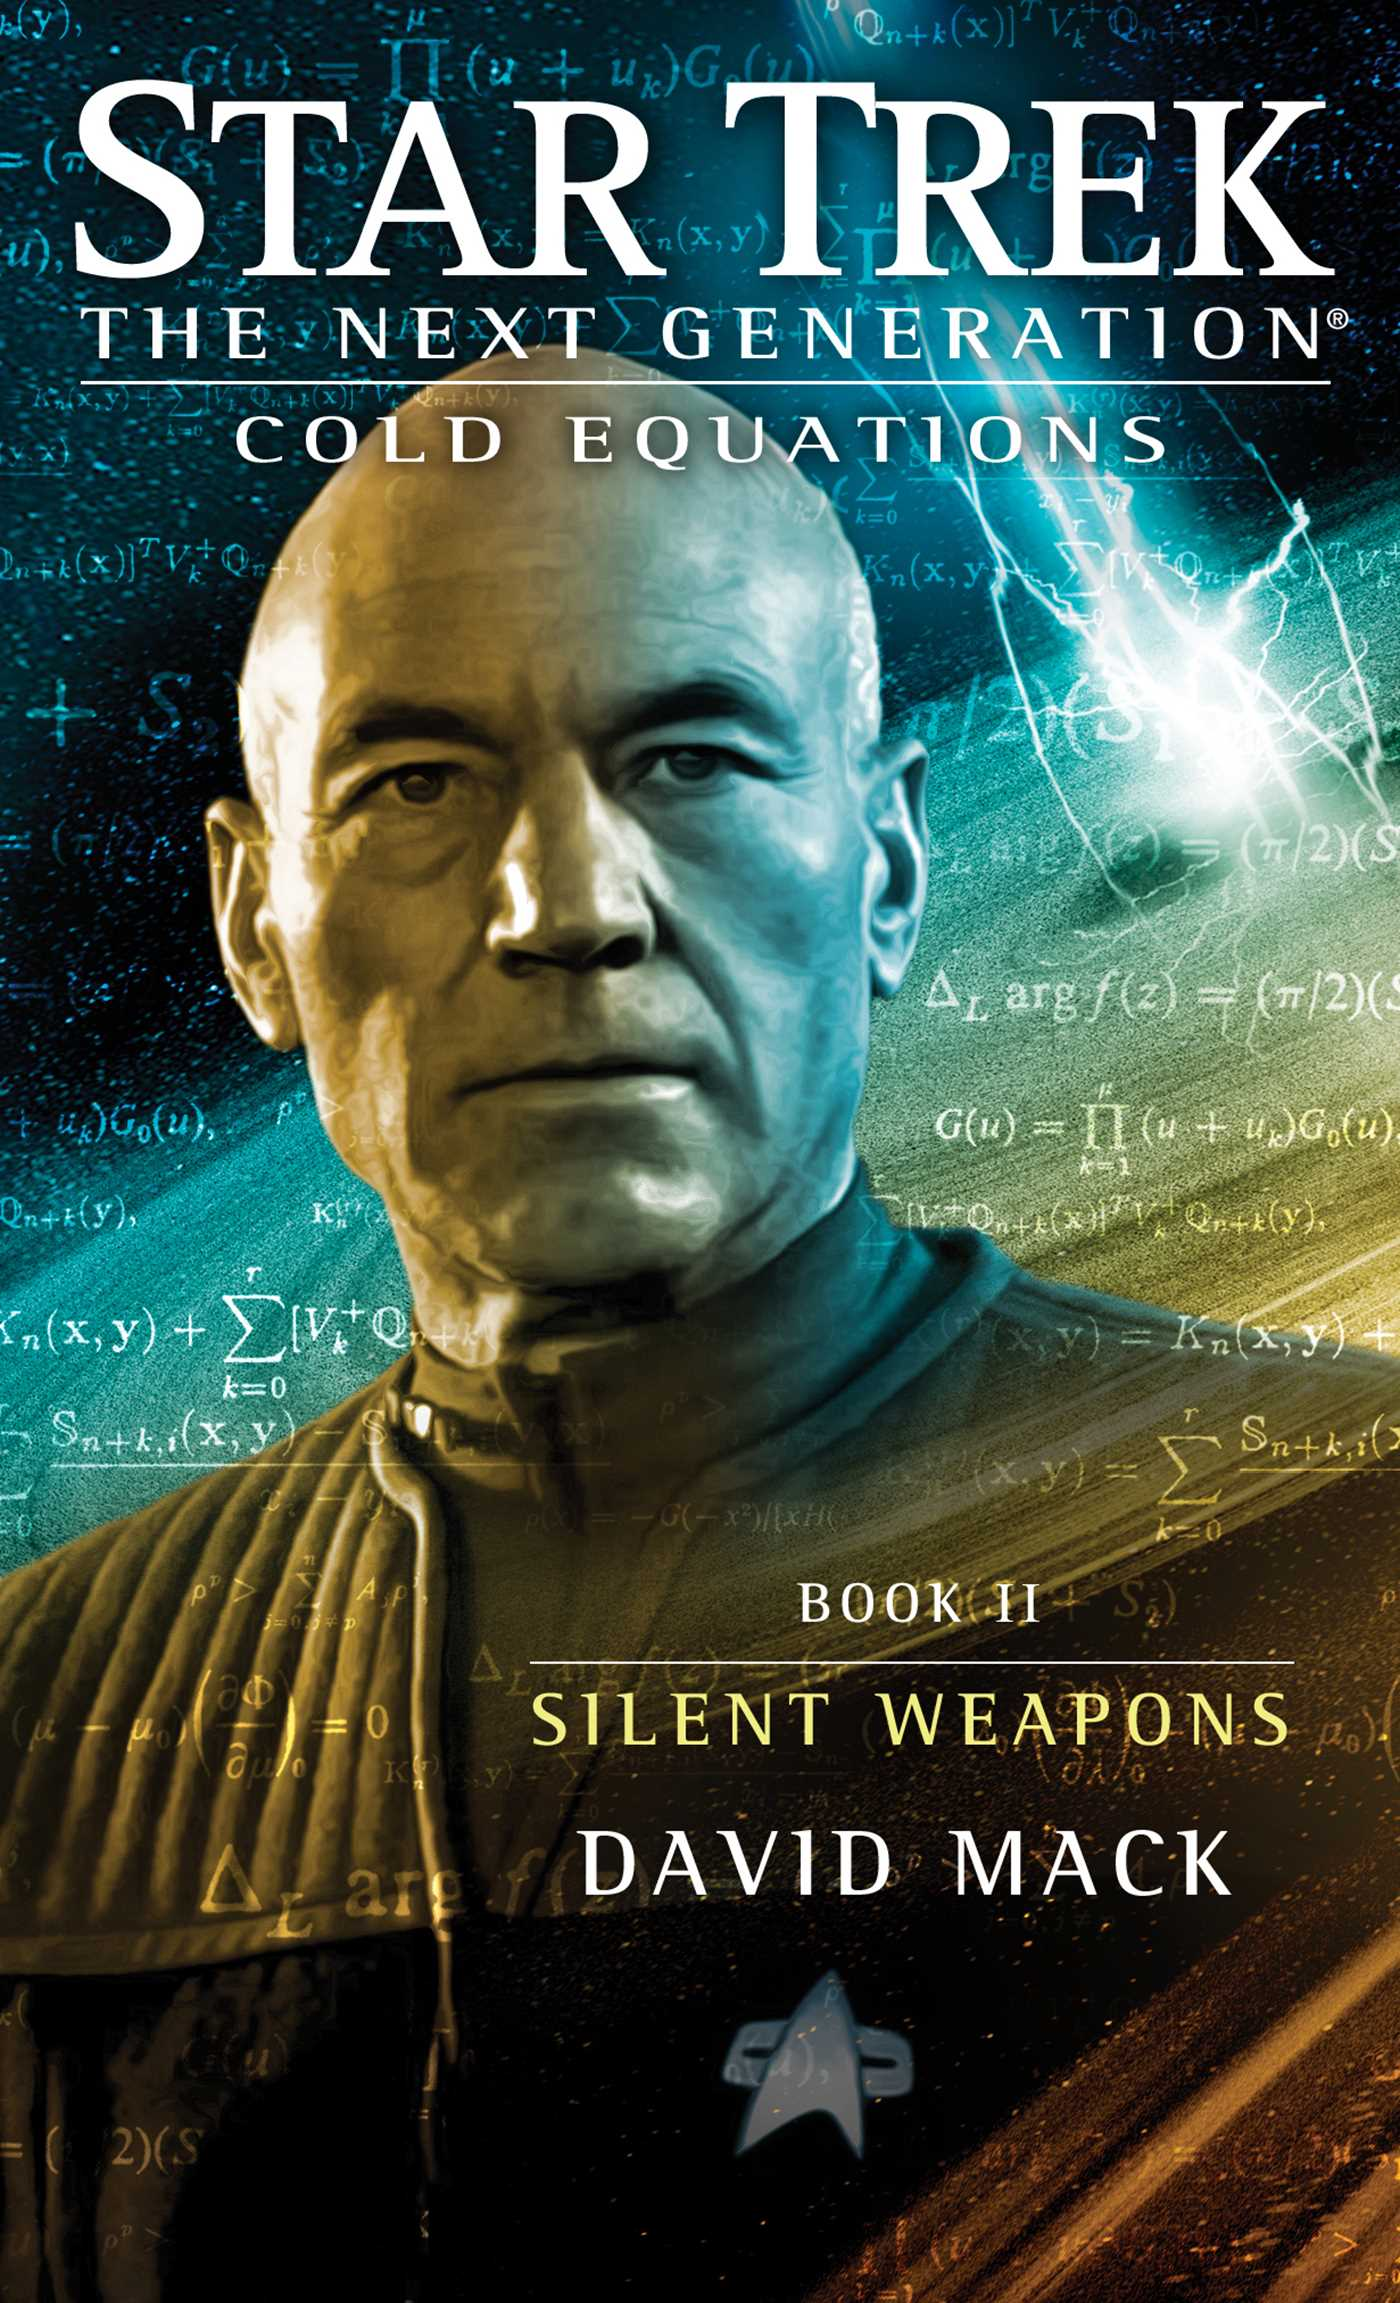 Star-trek-the-next-generation-cold-equations-silent-weapons-9781451650761_hr